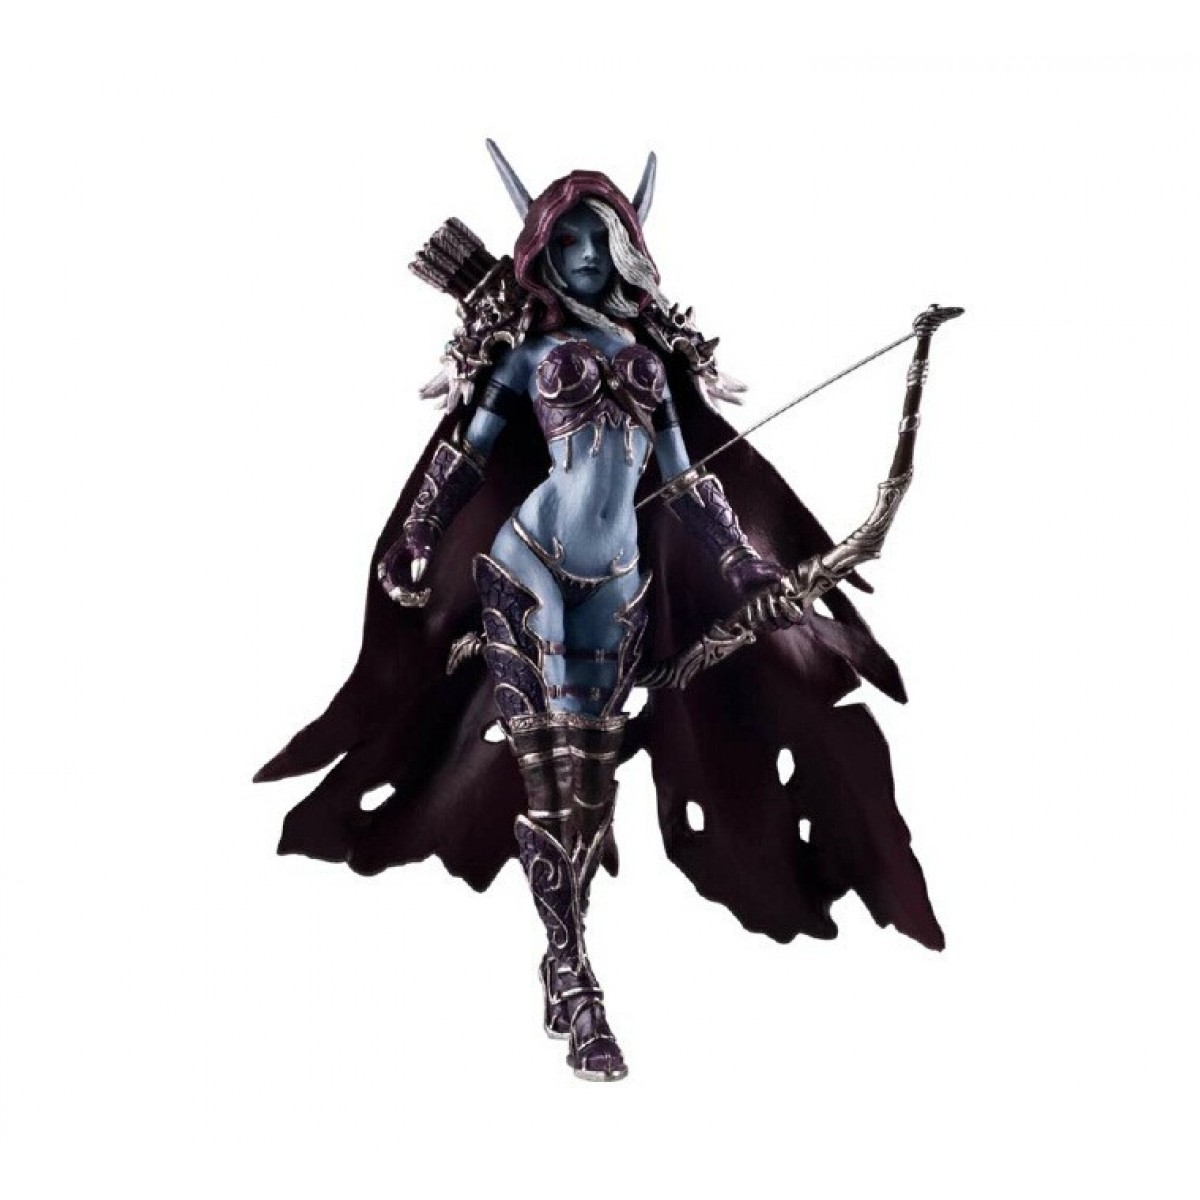 Sylvanas on sylvanas sexy slut